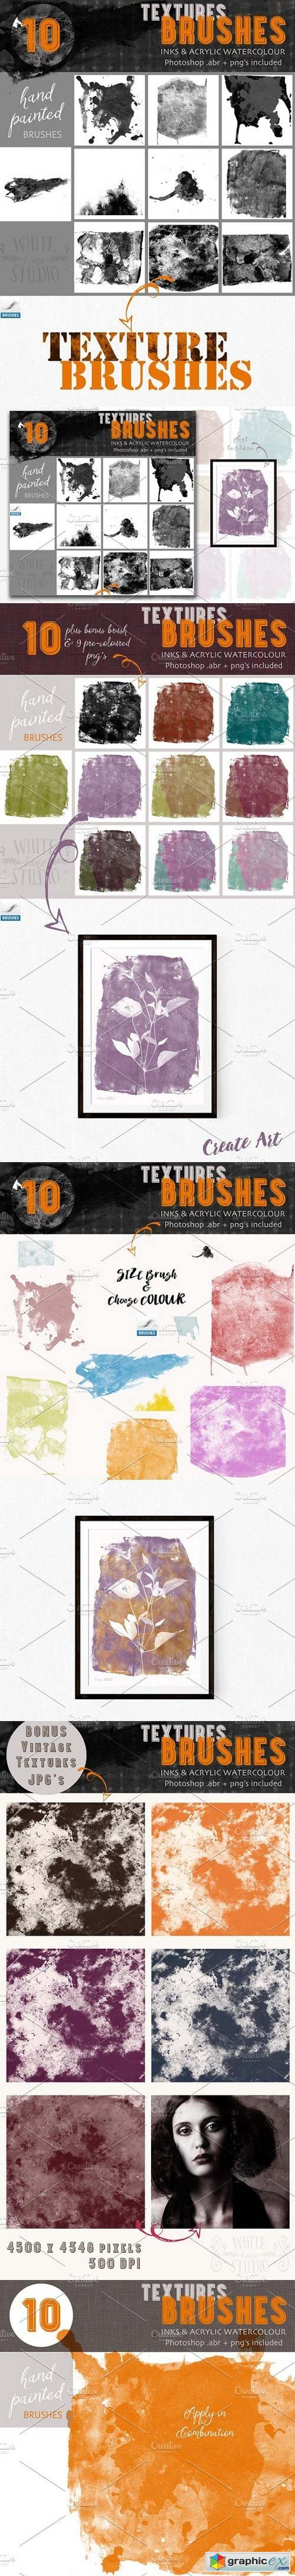 Textures Brushes- Inks & Acrylics